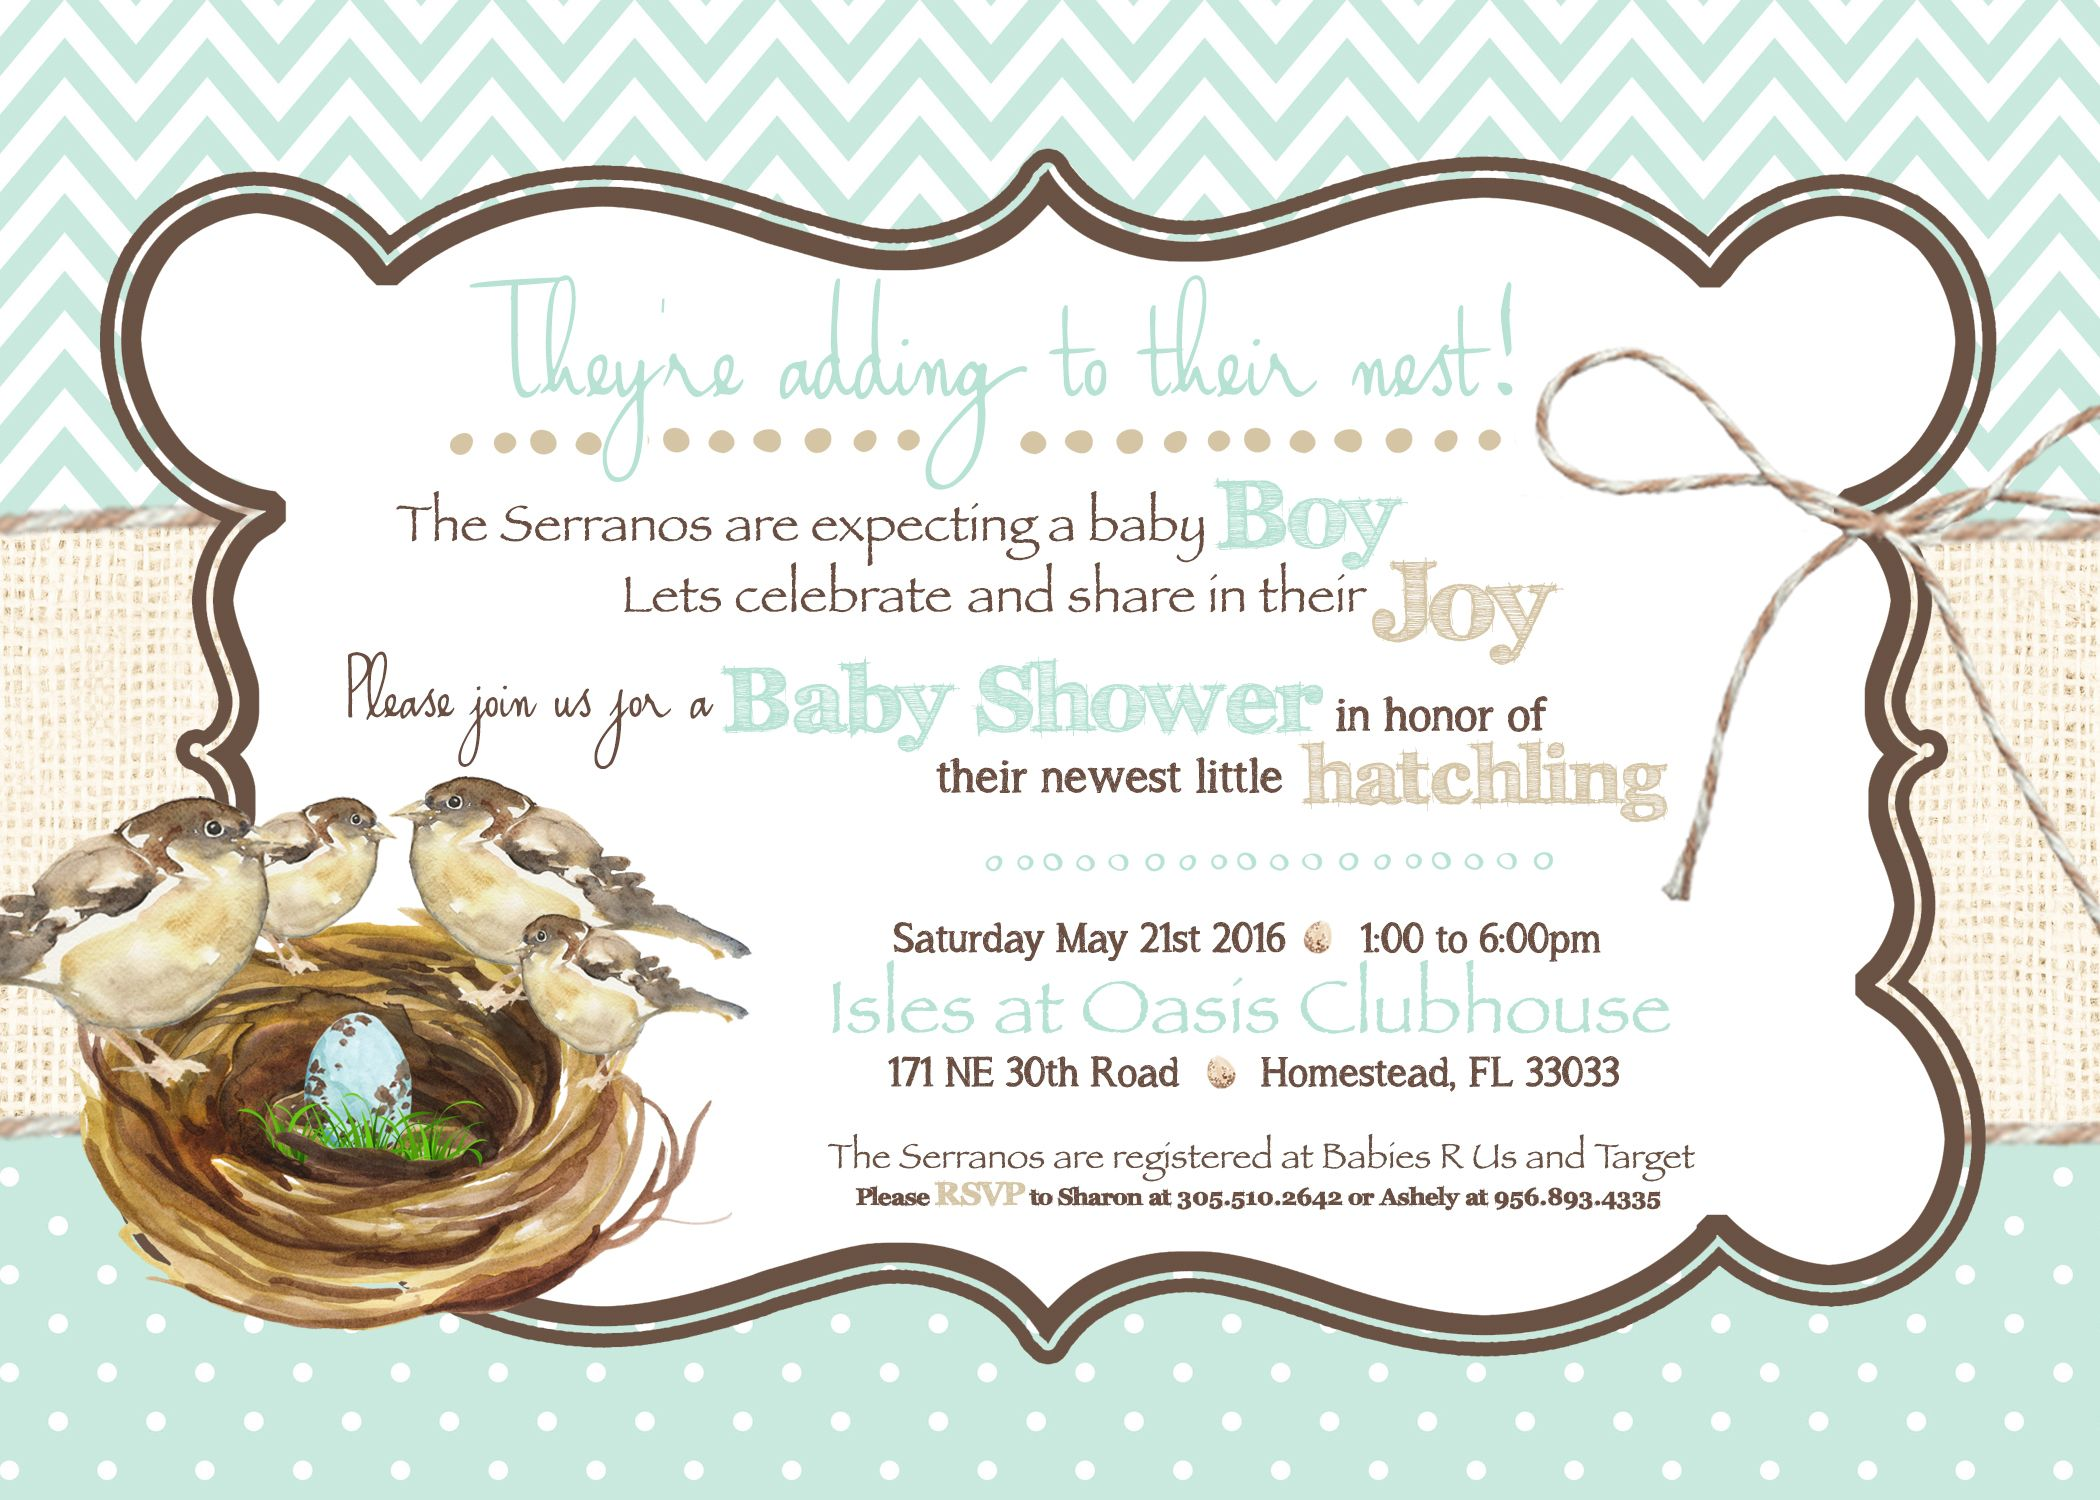 Growing Nest themed baby shower invitation- new baby, shower ...